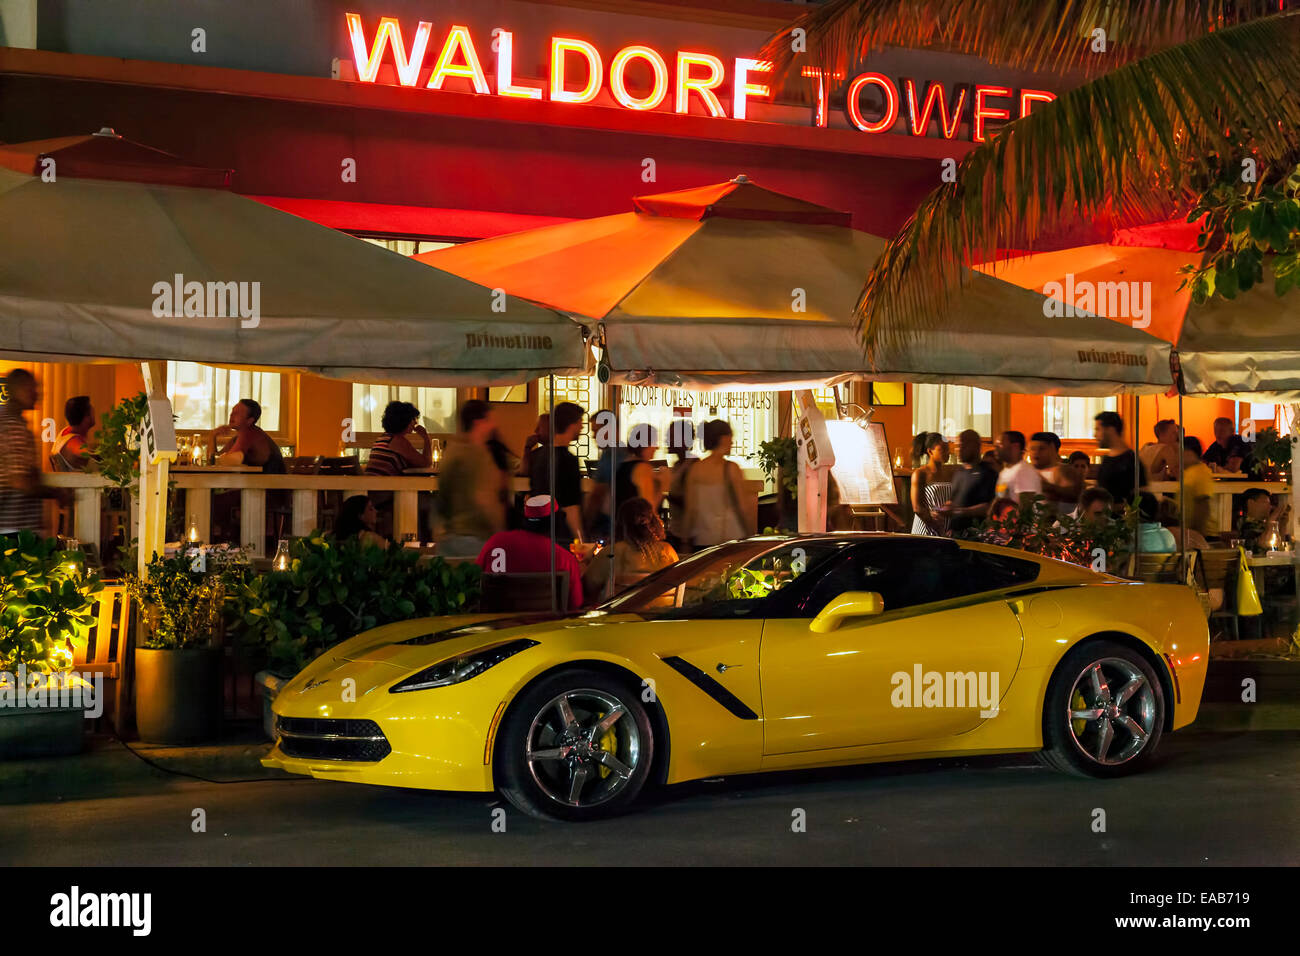 Bright yellow 2014 Chevy Corvette parked in front of the Room Mate Waldorf Towers on Deco Drive, Miami South Beach, Stock Photo